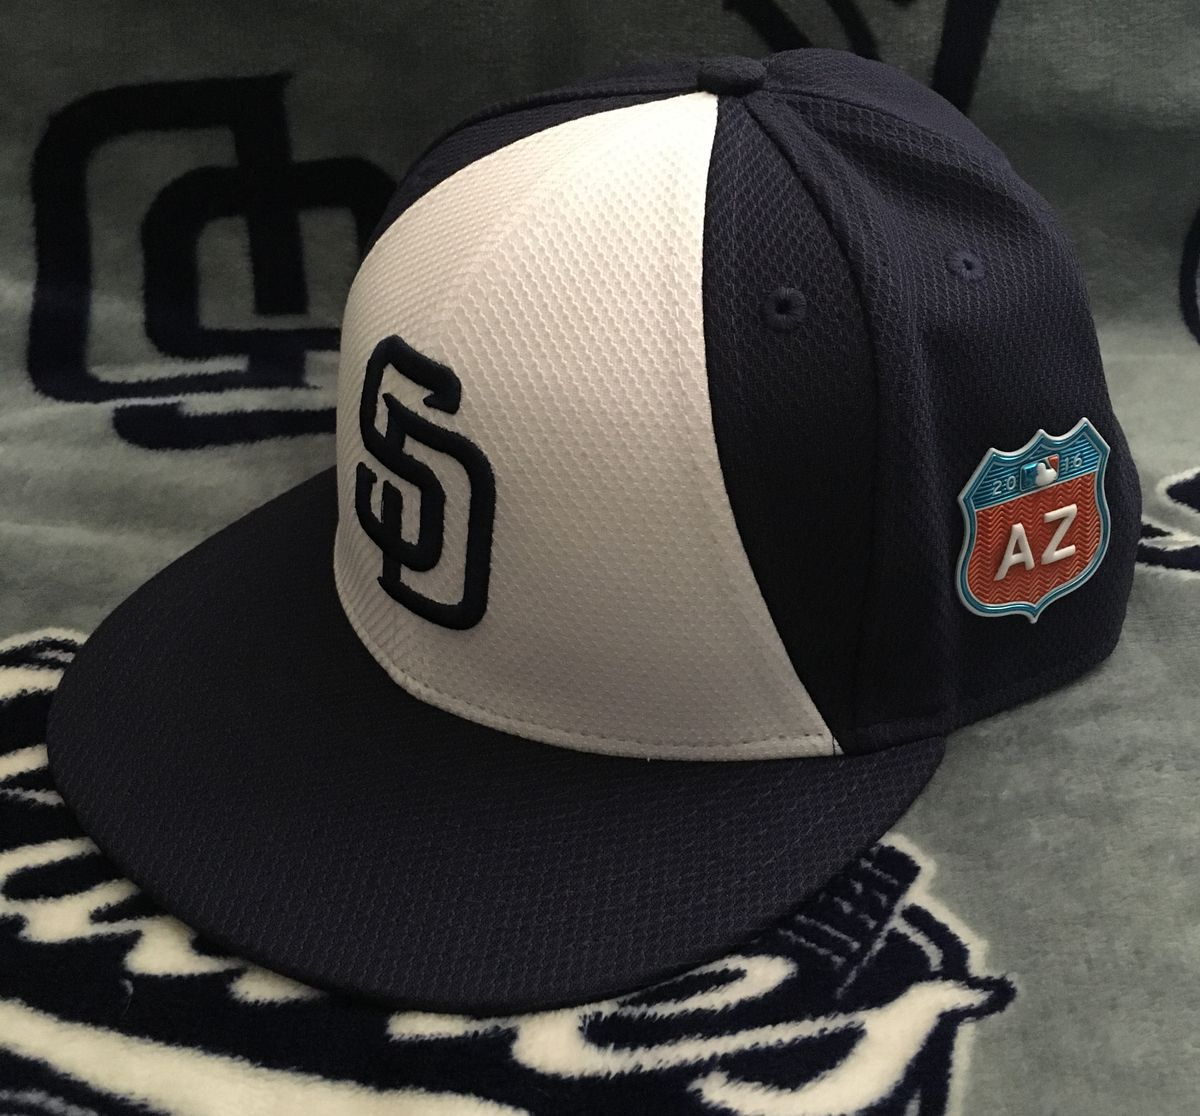 0be177f8c57df5 The new Padres Spring Training cap is a mix of the modern colorway with the  classic split-panel (bell shape). An addition to all Spring Training caps  is a ...